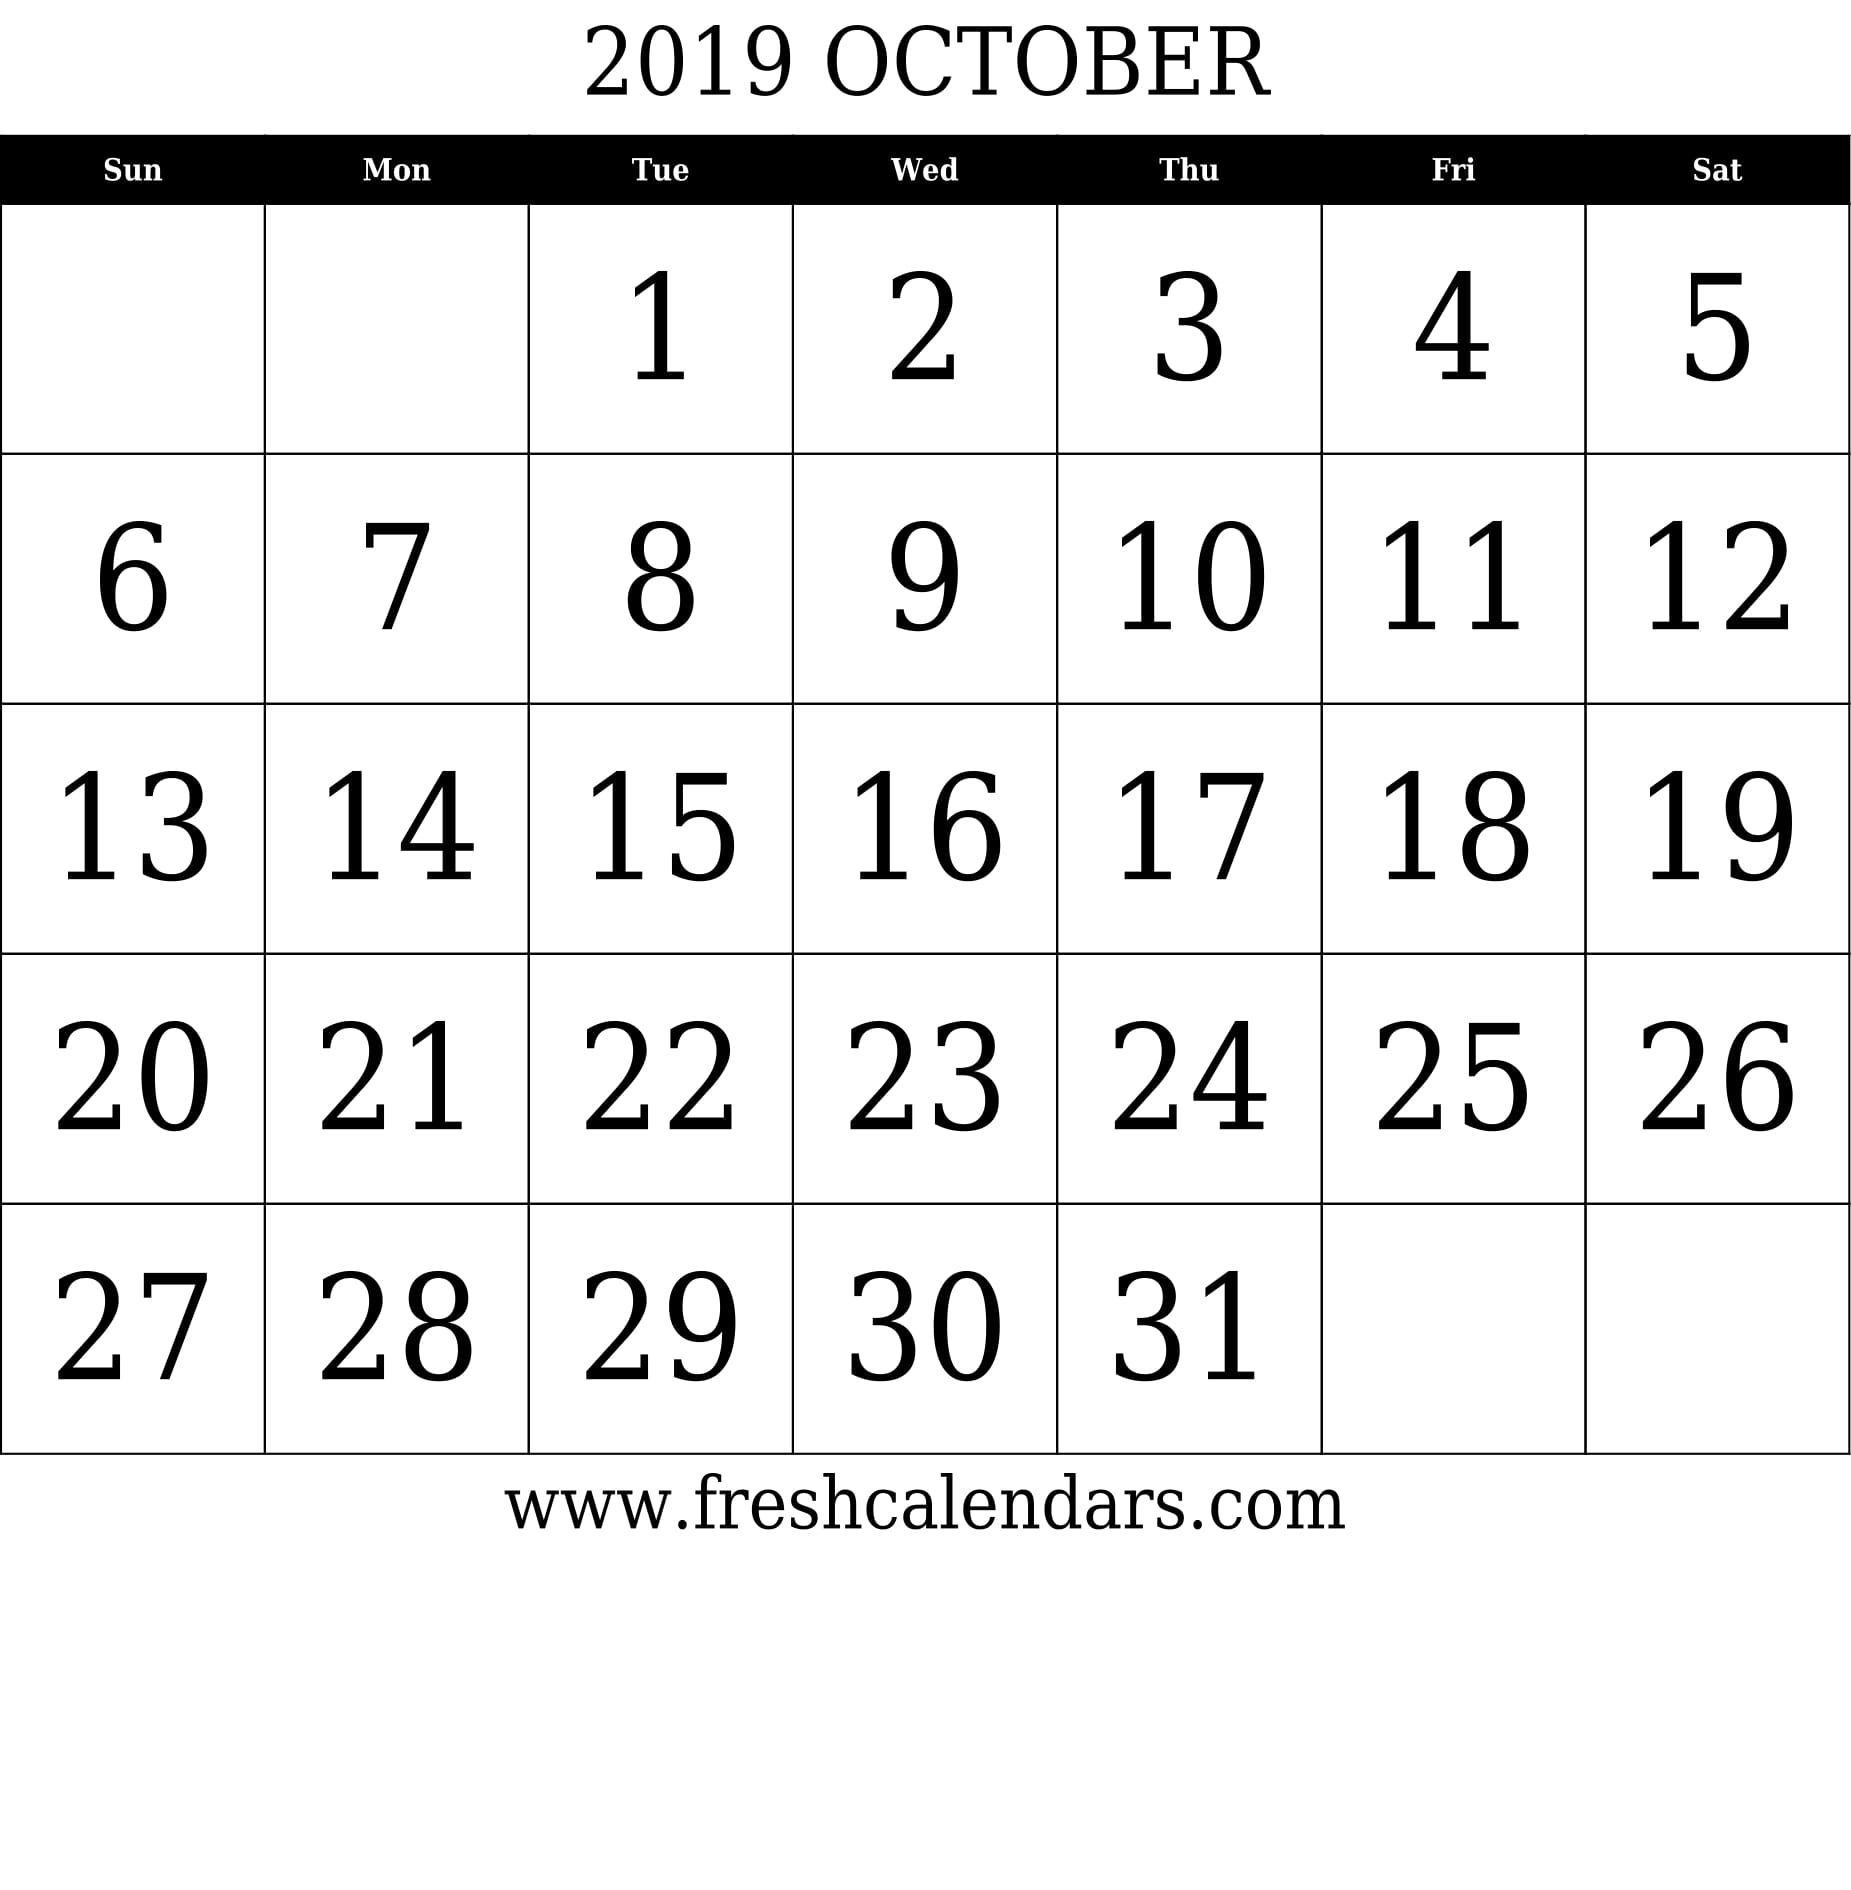 October 2019 Calendar With Large Dates